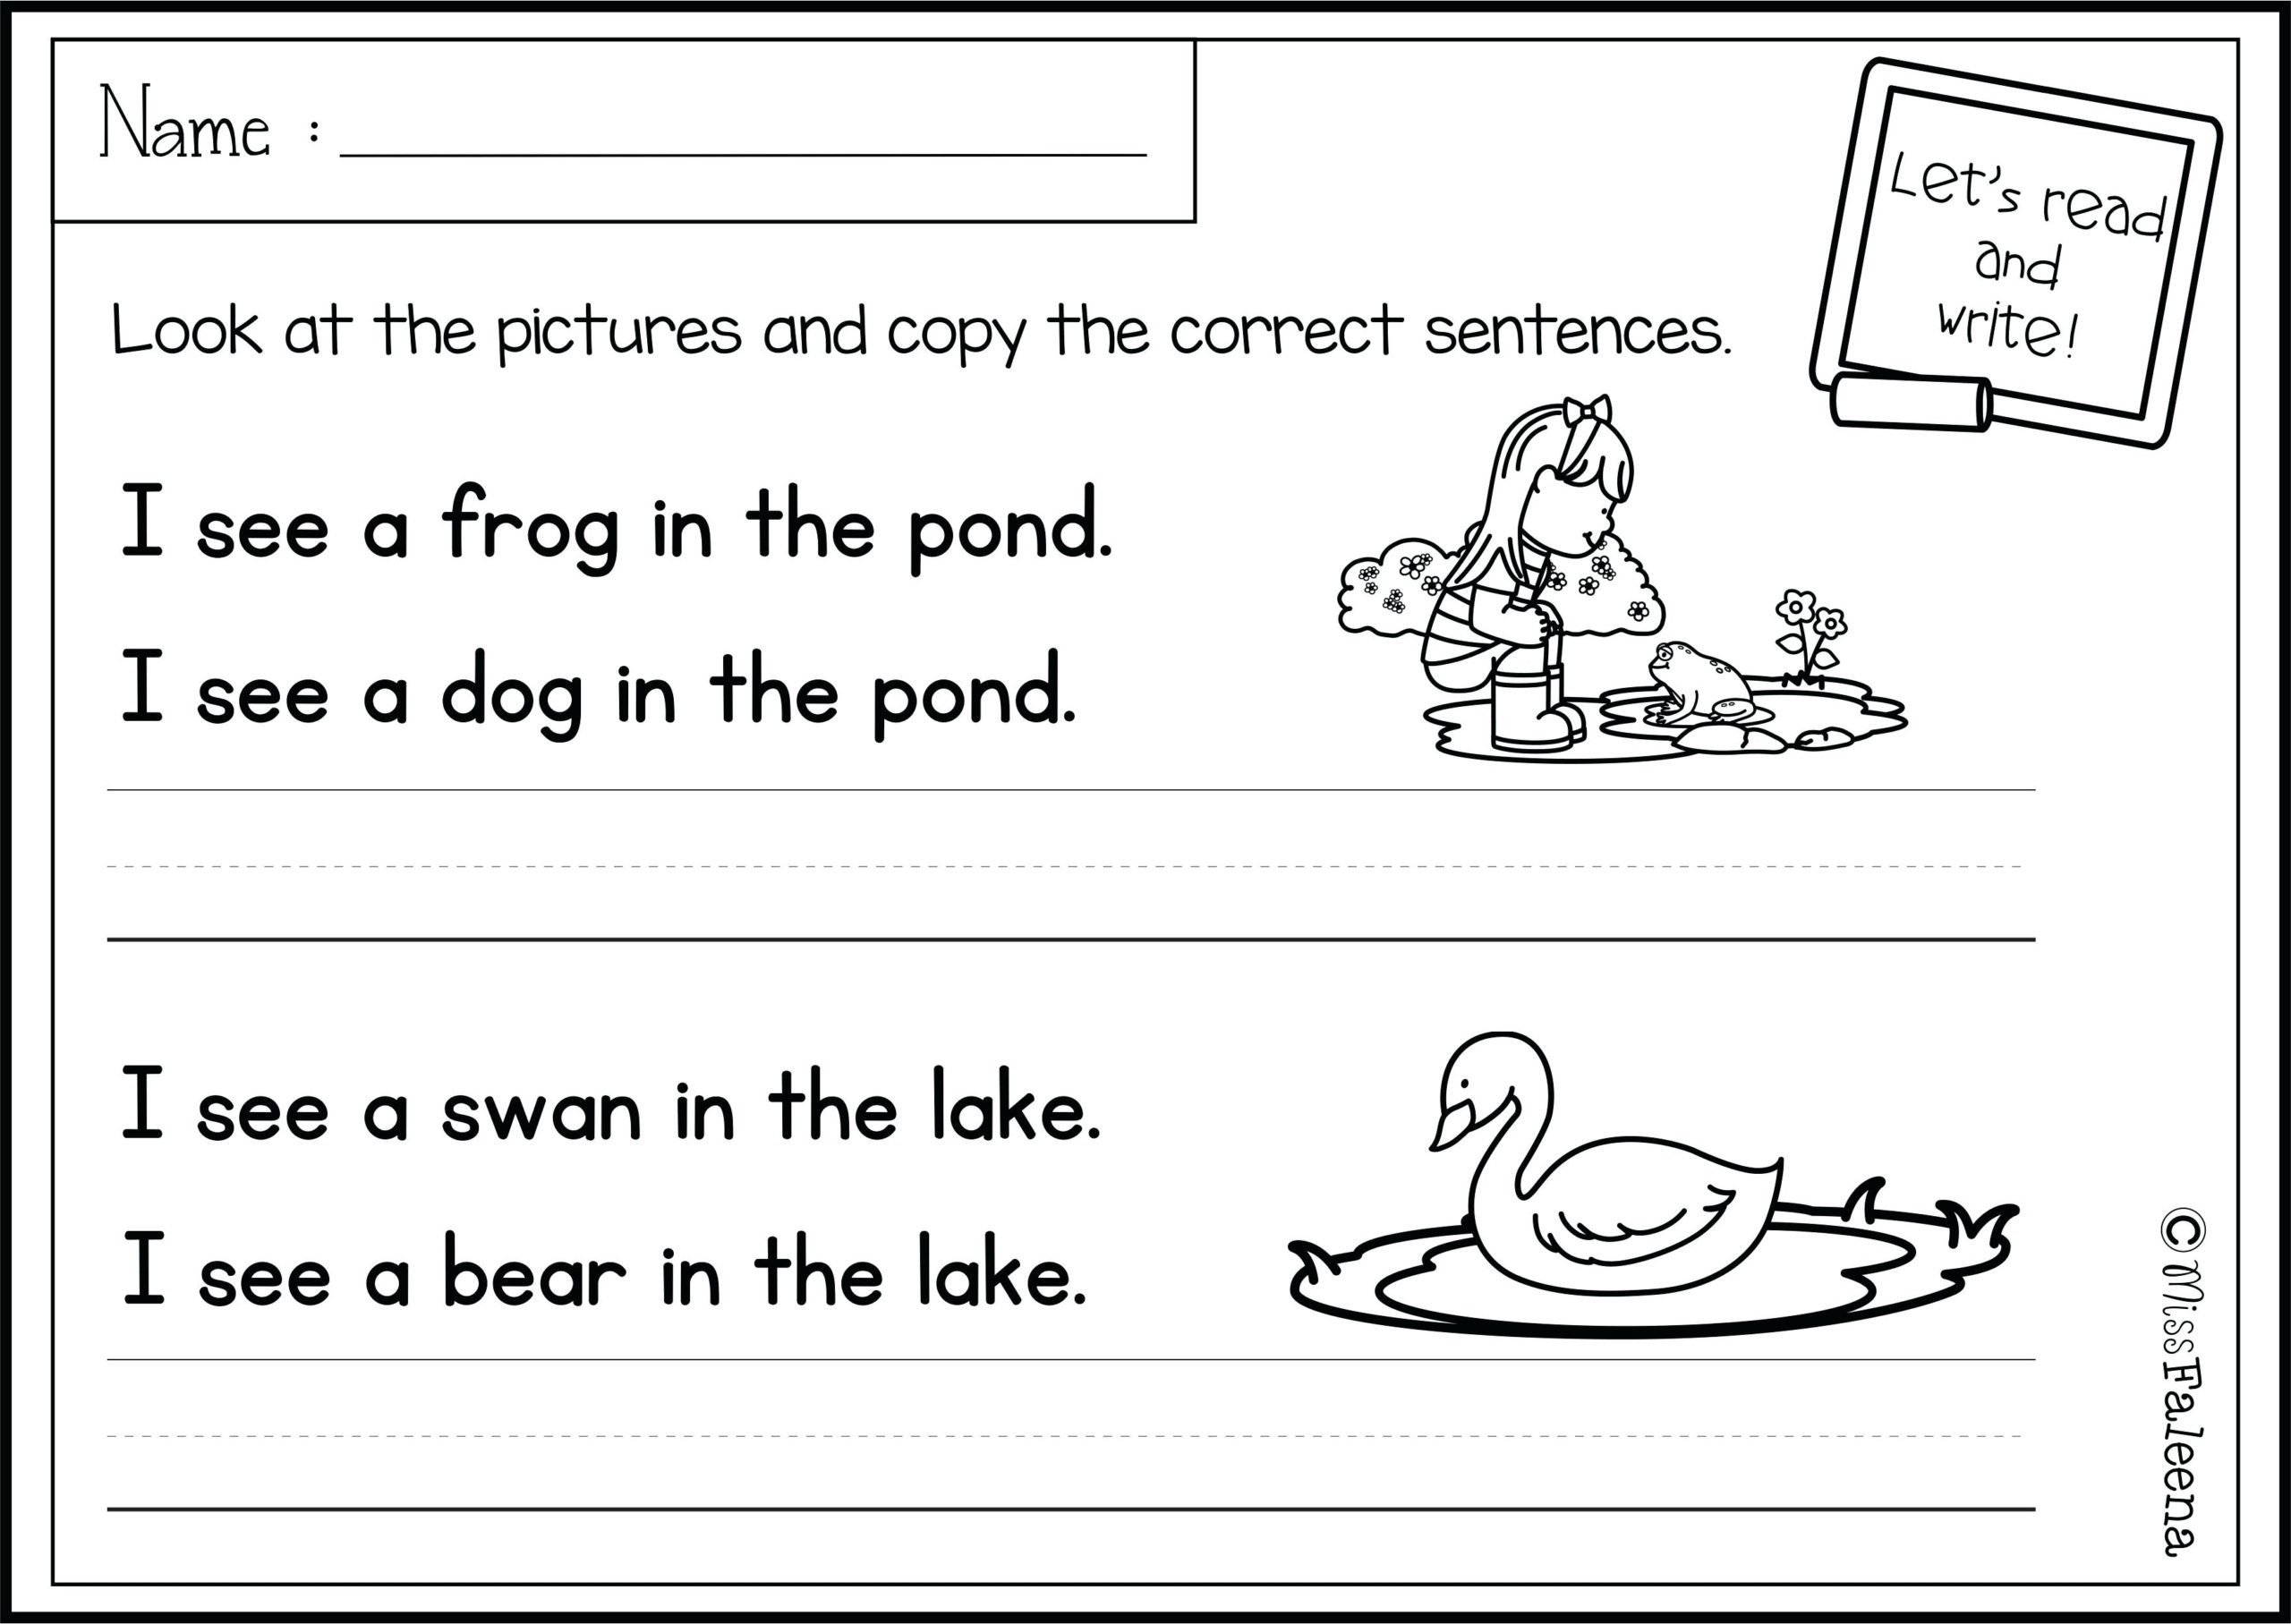 Word Problems Kindergarten Worksheets Worksheet Phonics Writing Worksheets Math Problems Sight